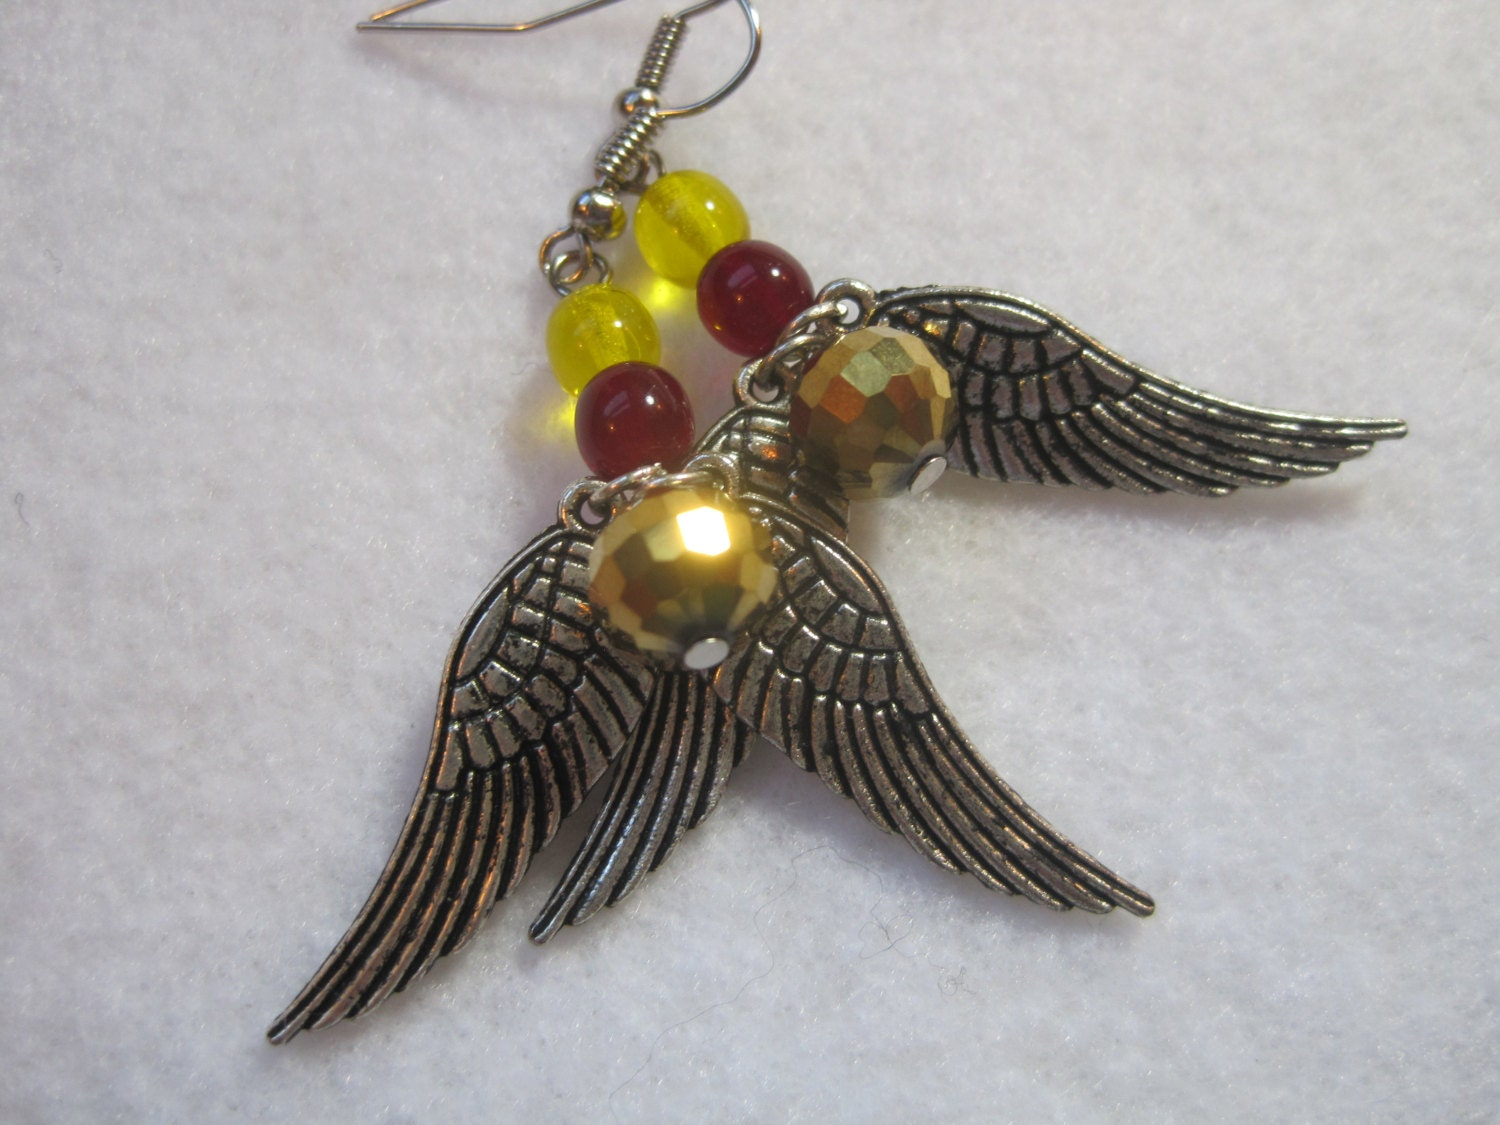 Golden snitch earrings. Harry Potter jewelry. Quidditch earrings. Gryffindor colors. Other houses available. Be a seeker! 150 points! Silver - ArtsParadis